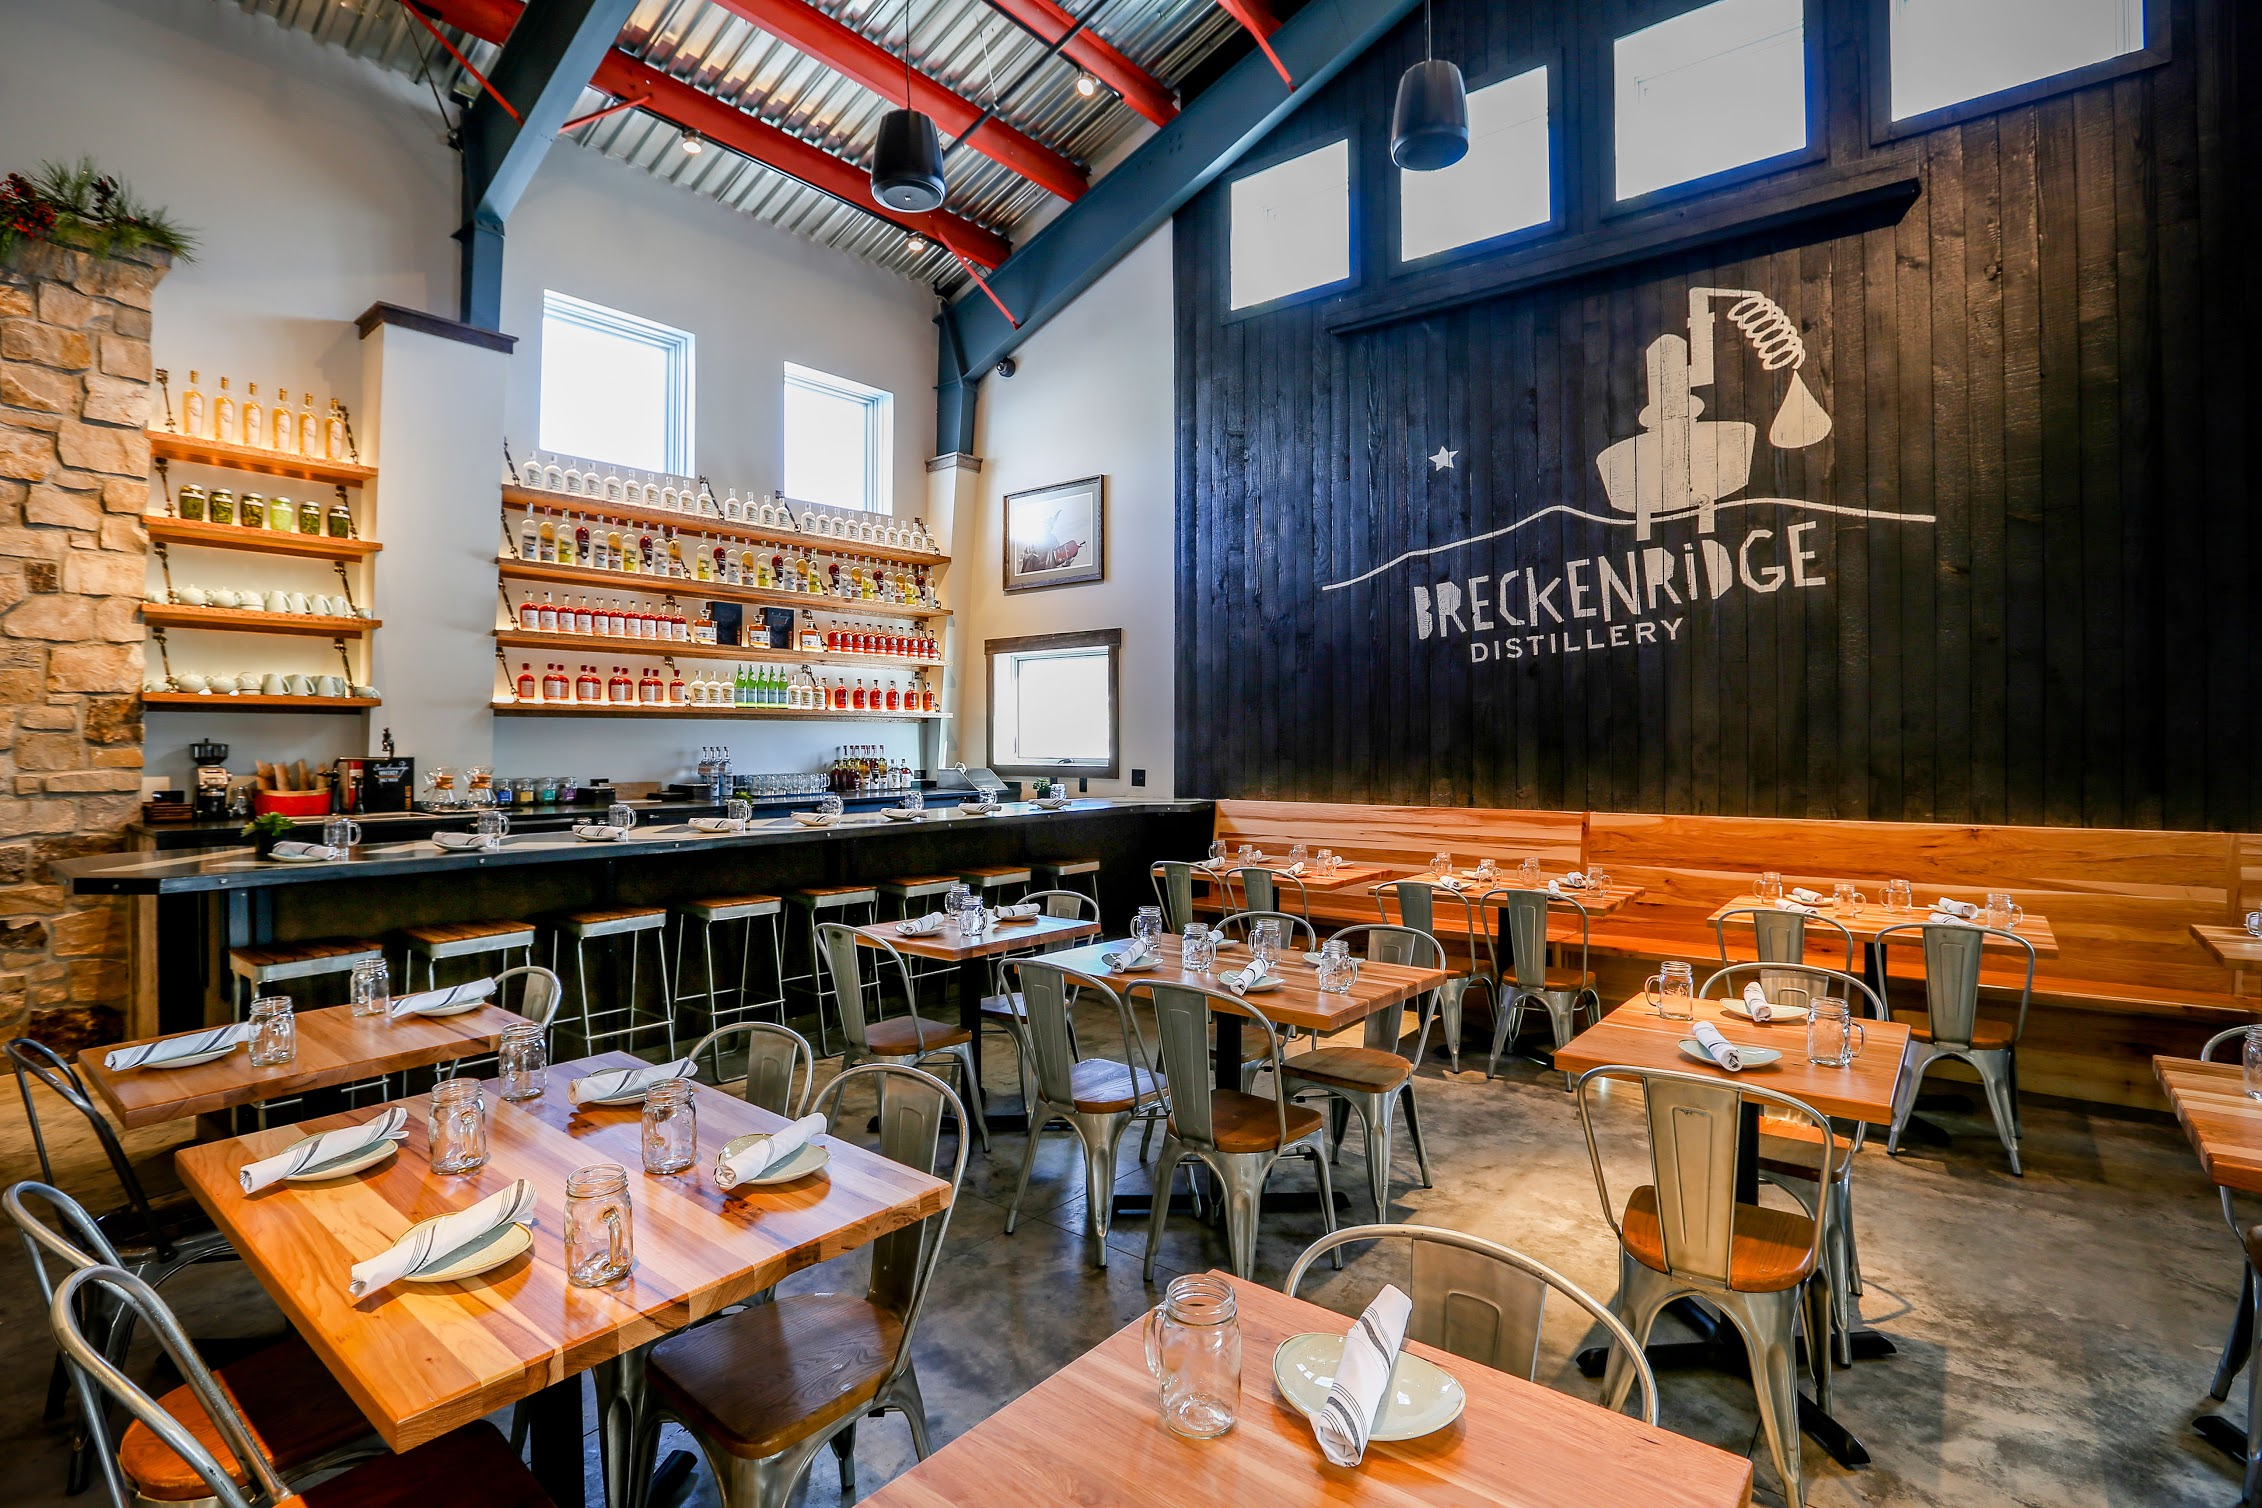 Breckenridge Distillery Restaurant Releases New Menu by David Burke